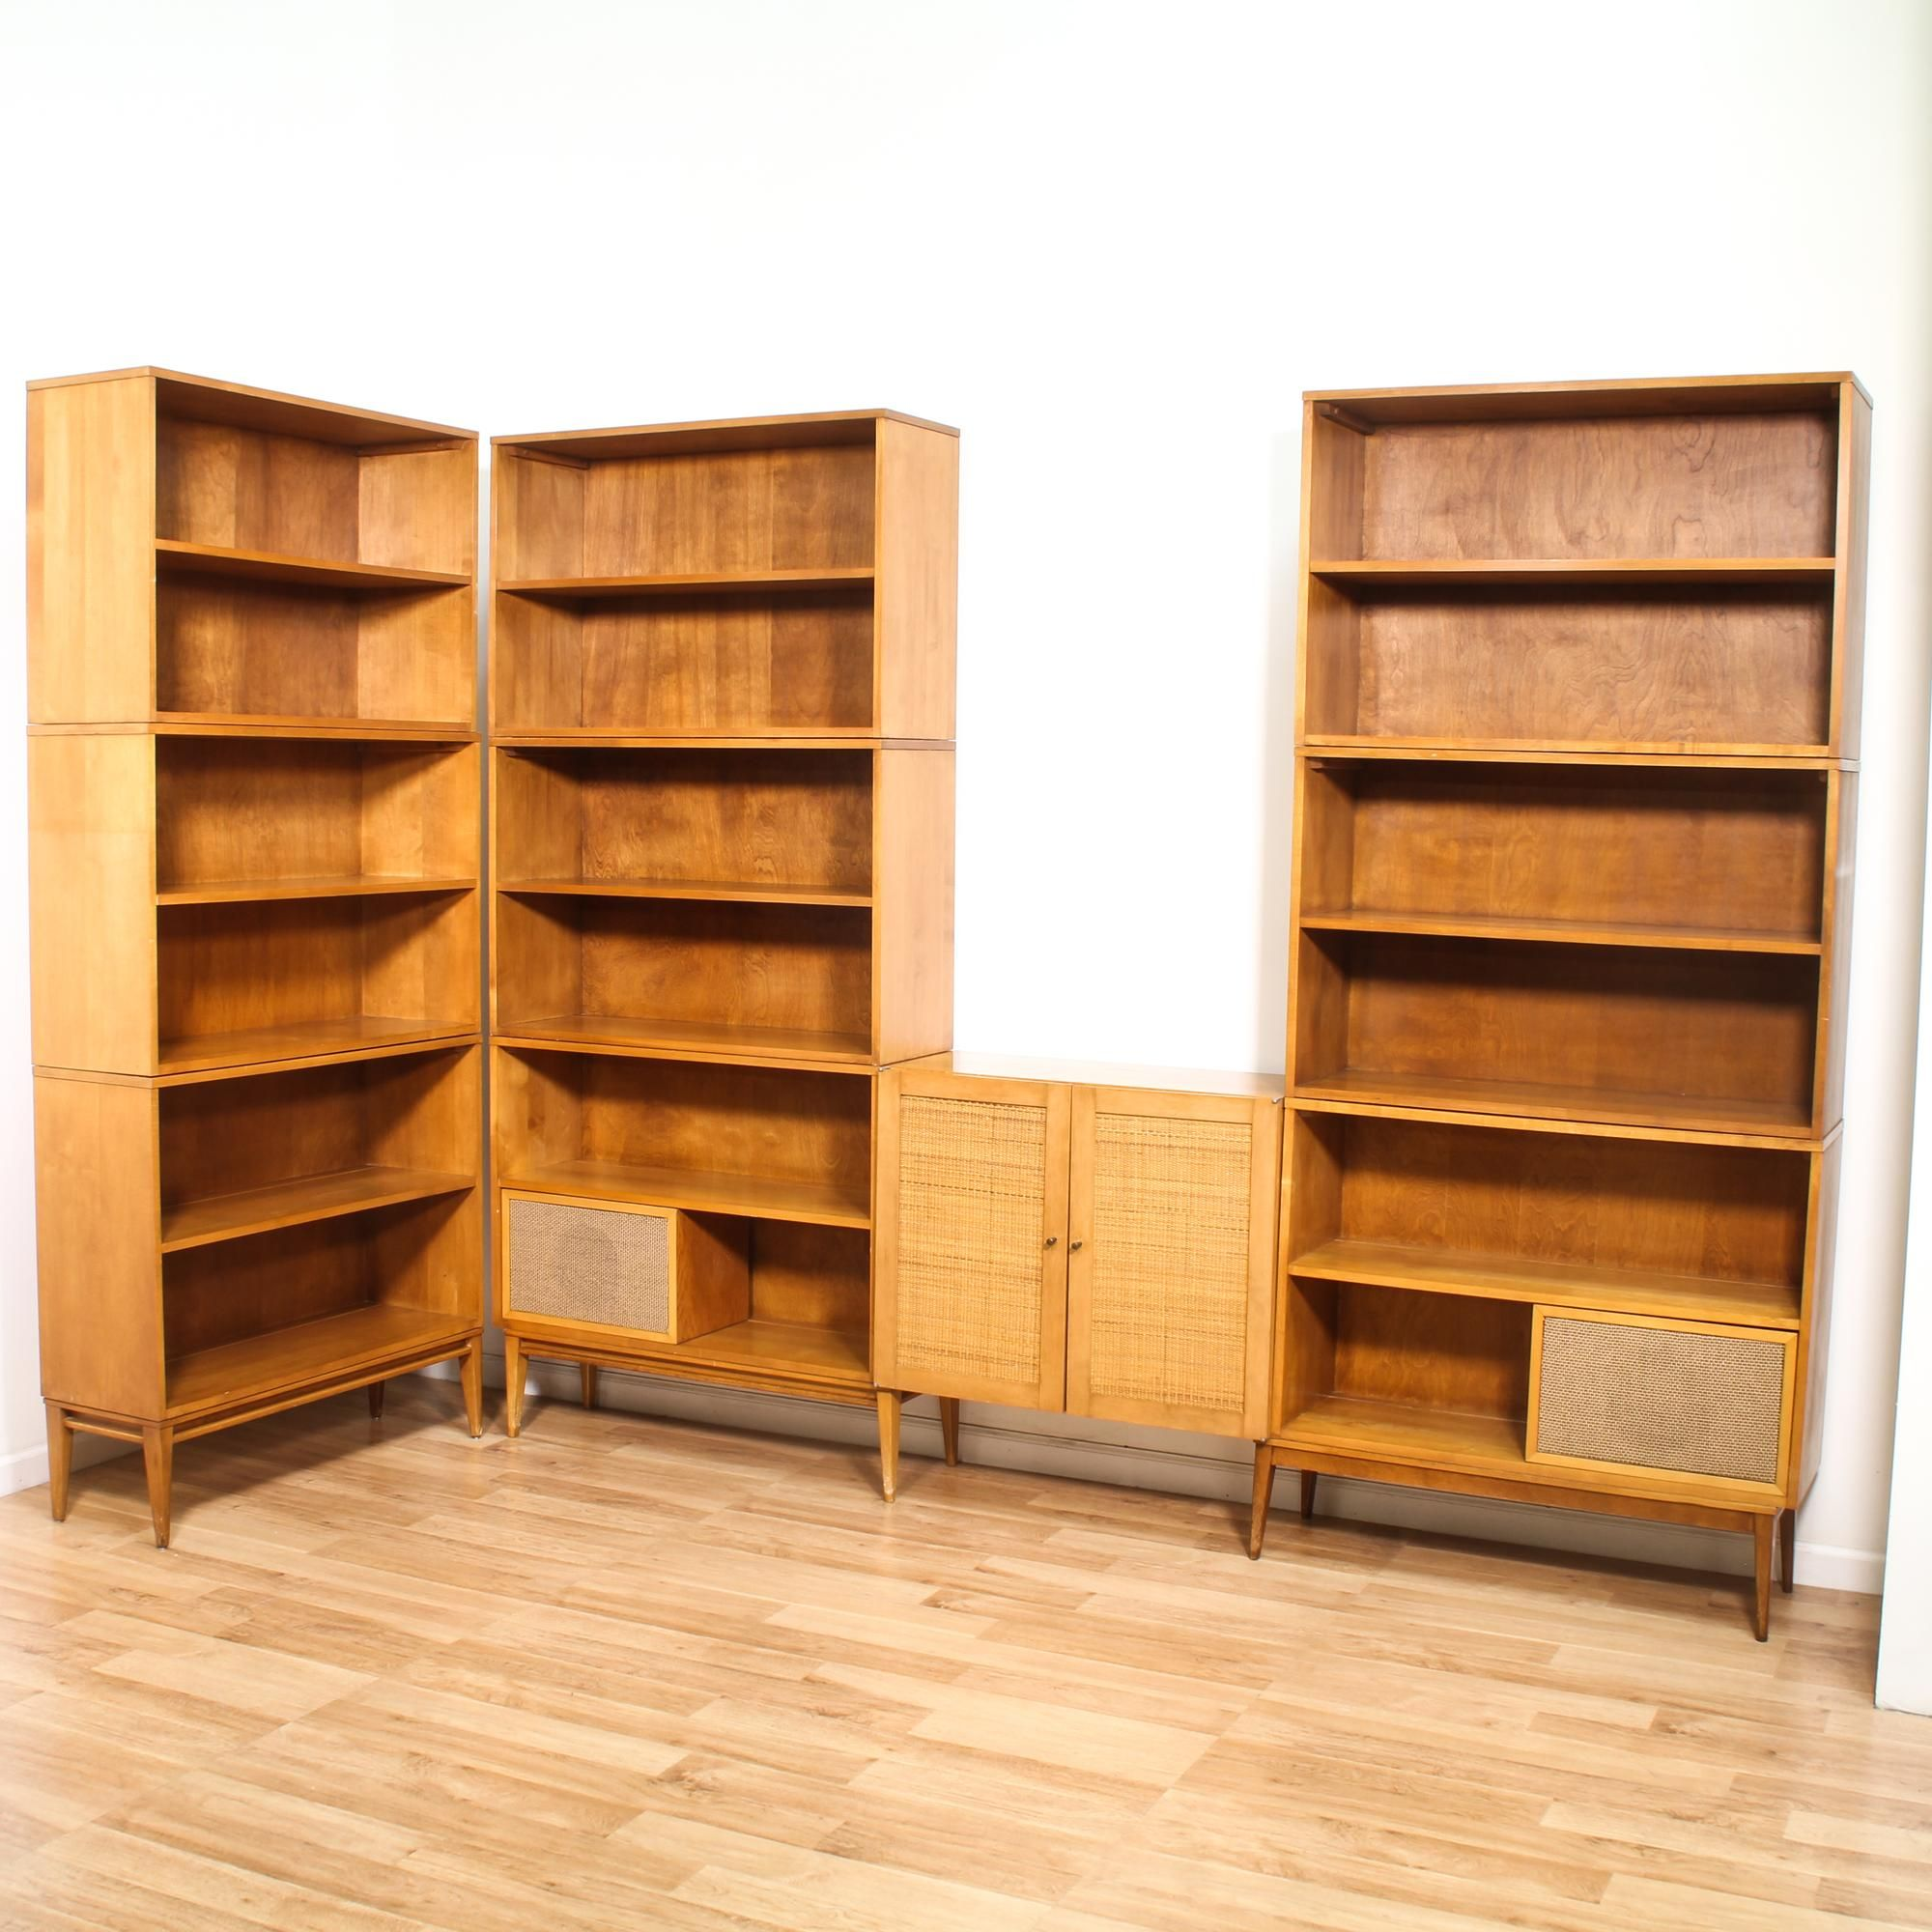 This Mid Century Modern Style Wall Unit Has 3 Bookcases,